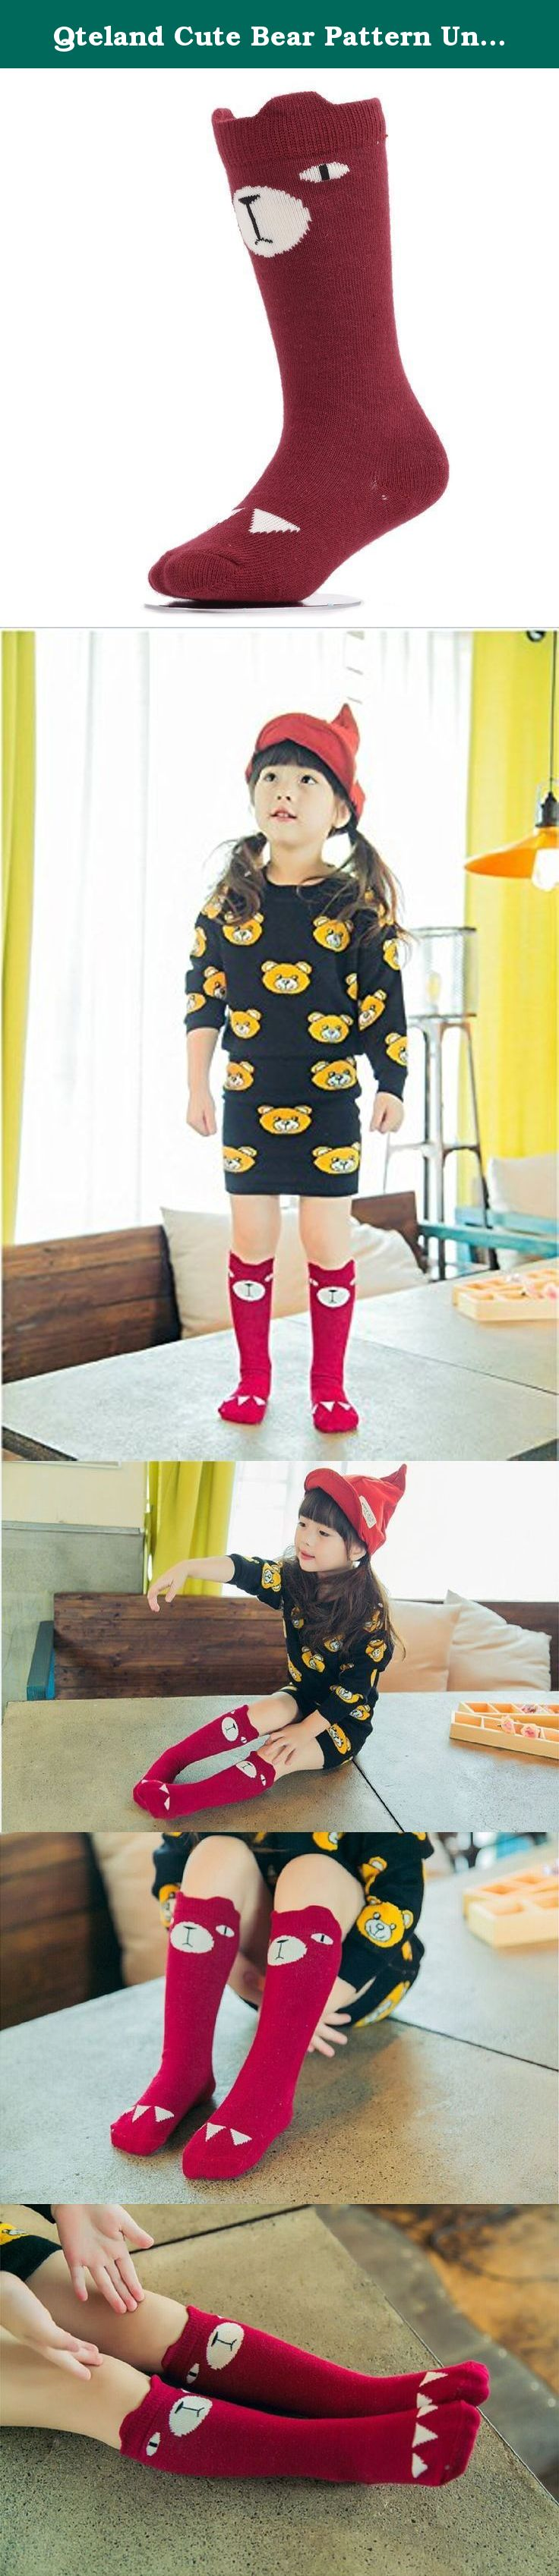 Qteland Cute Bear Pattern Unisex-baby Knee High Socks Tube socks for Kids 2-pack. Qteland Cotton high knee socks for Babies are an adorable and fashion item dress up your little one. Look for all of our adorable high knee socks! Available in stripes, Geometry,fox,cat,Mickey Mouse,bear, rabbit and so on. A material composition for comfort these socks are made of 75% cotton, 20% polyester, and 5% spandex for a snug, comfortable fit. Three size for your choose Size S: 0-12 mo, length of...